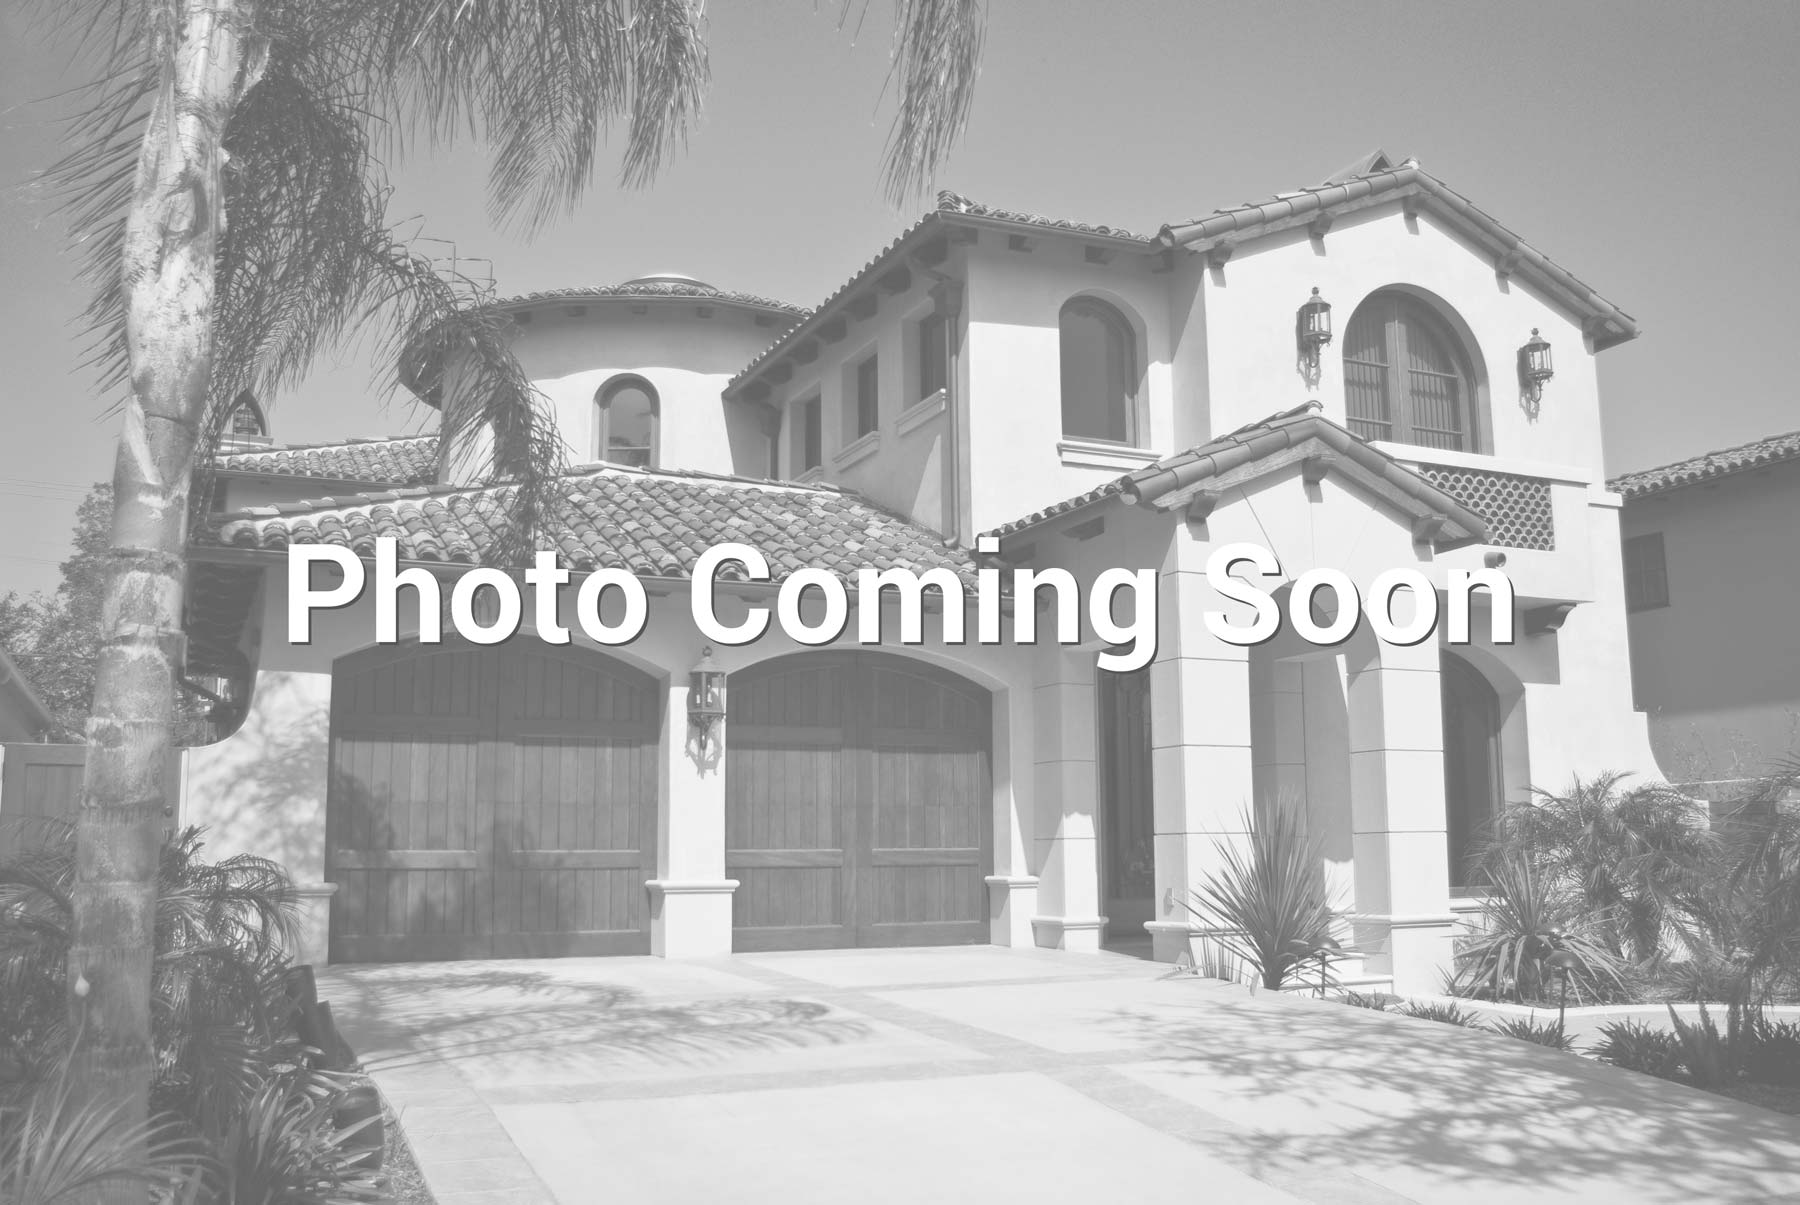 $469,000 - 3Br/2Ba -  for Sale in El Cajon, El Cajon